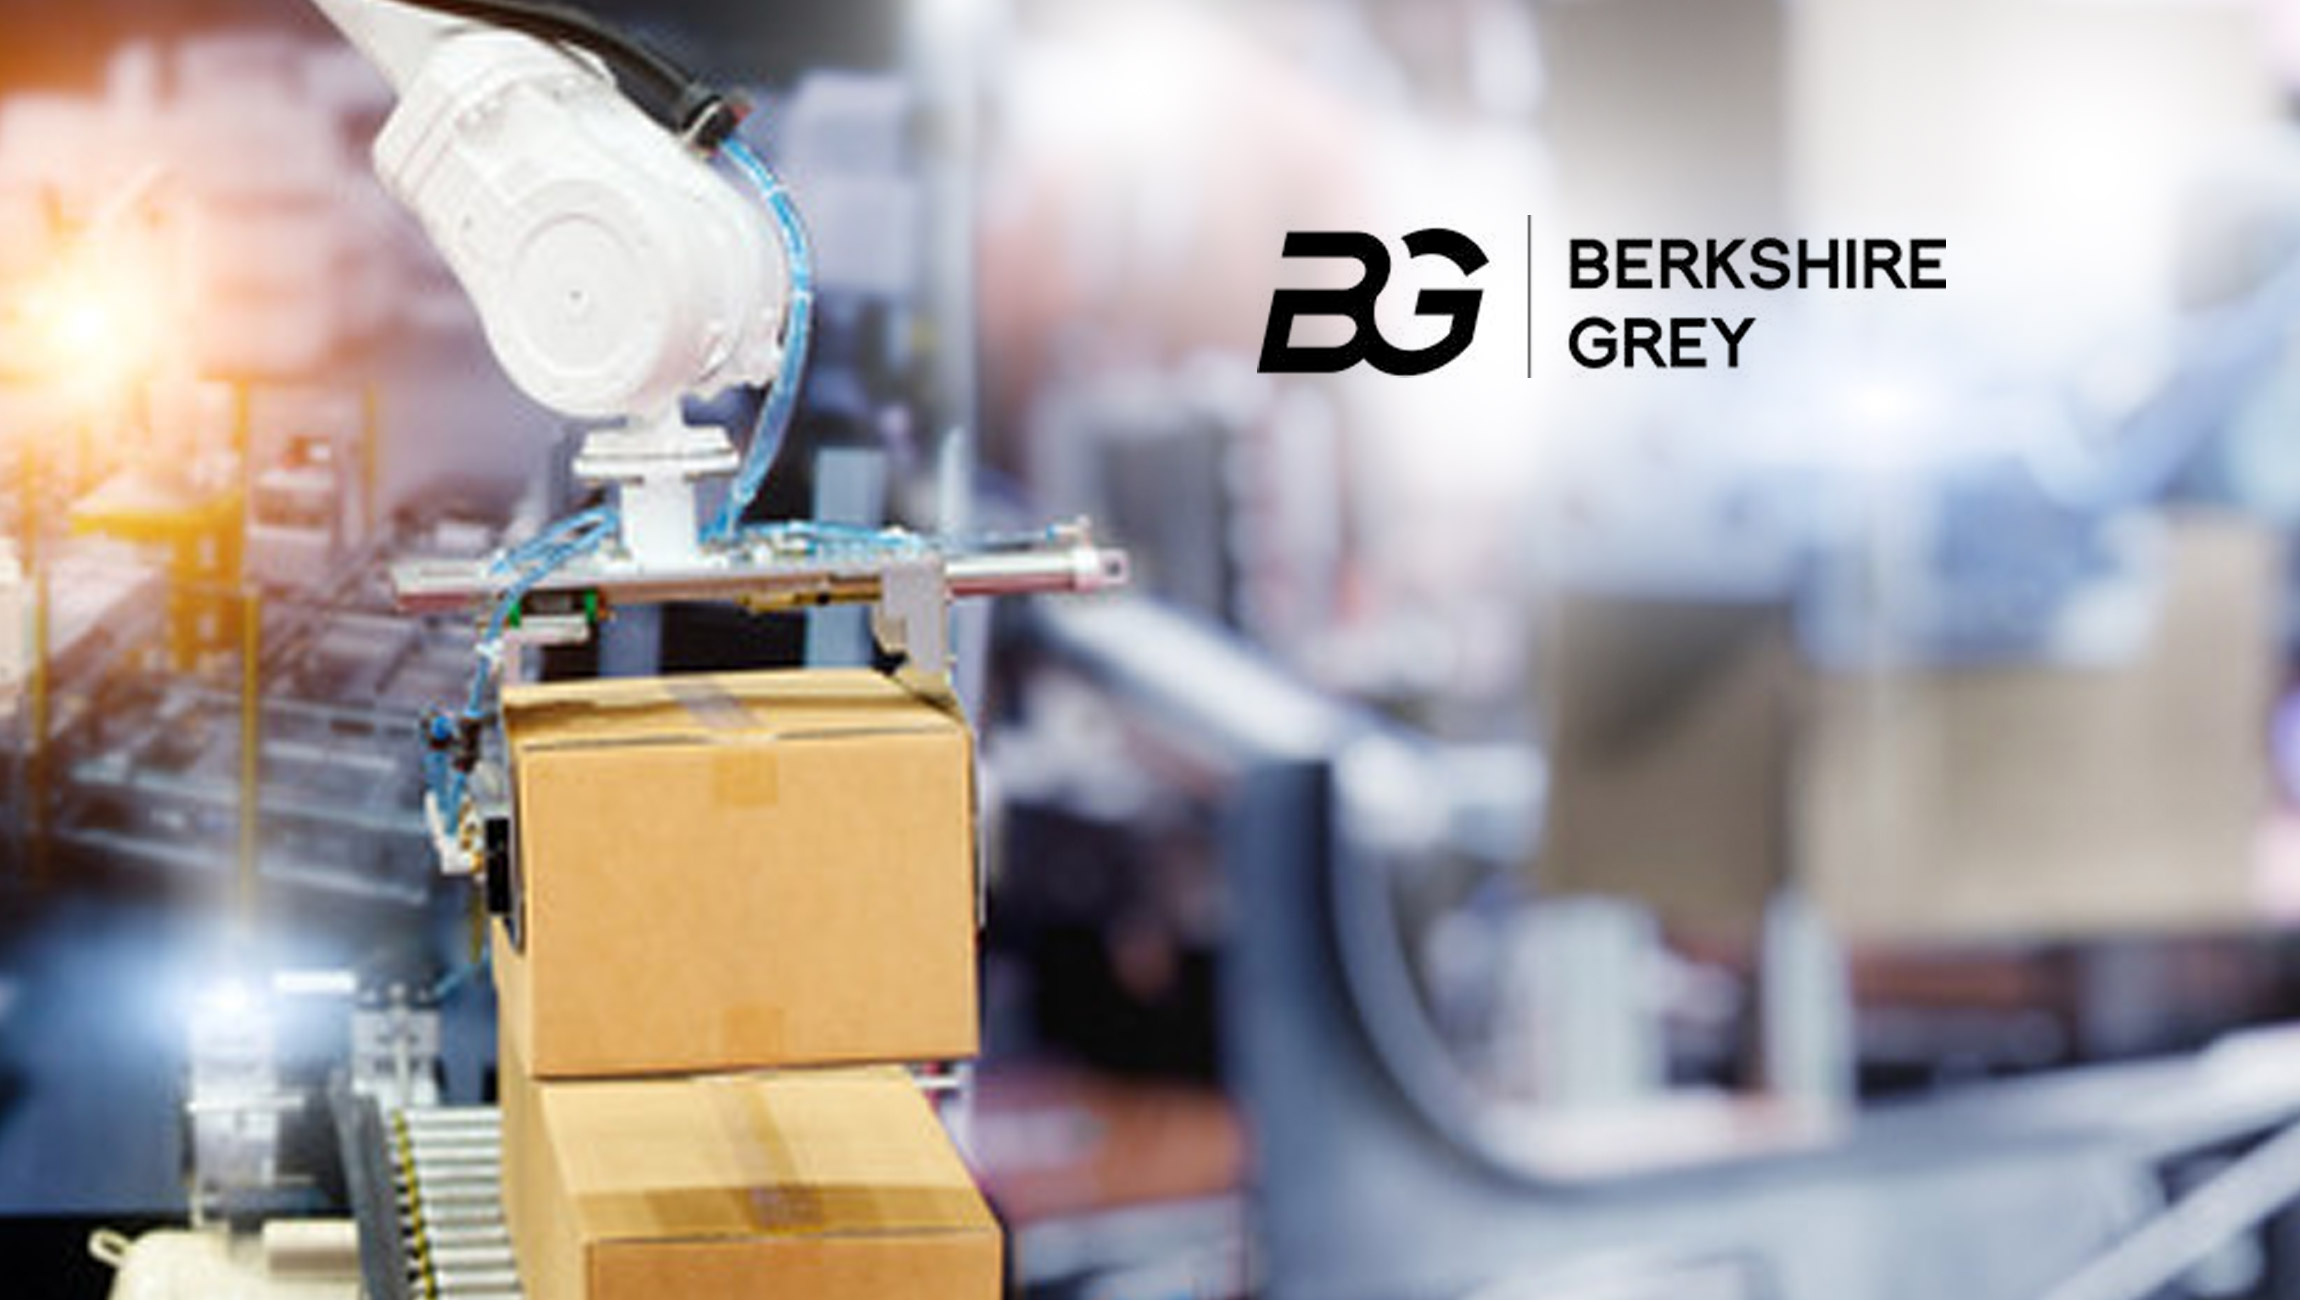 Berkshire-Grey-Unveils-Next-Generation-of-Intelligent-Enterprise-Robotic-Picking-and-Advanced-Mobility-Solutions-to-Accelerate-Fulfillment